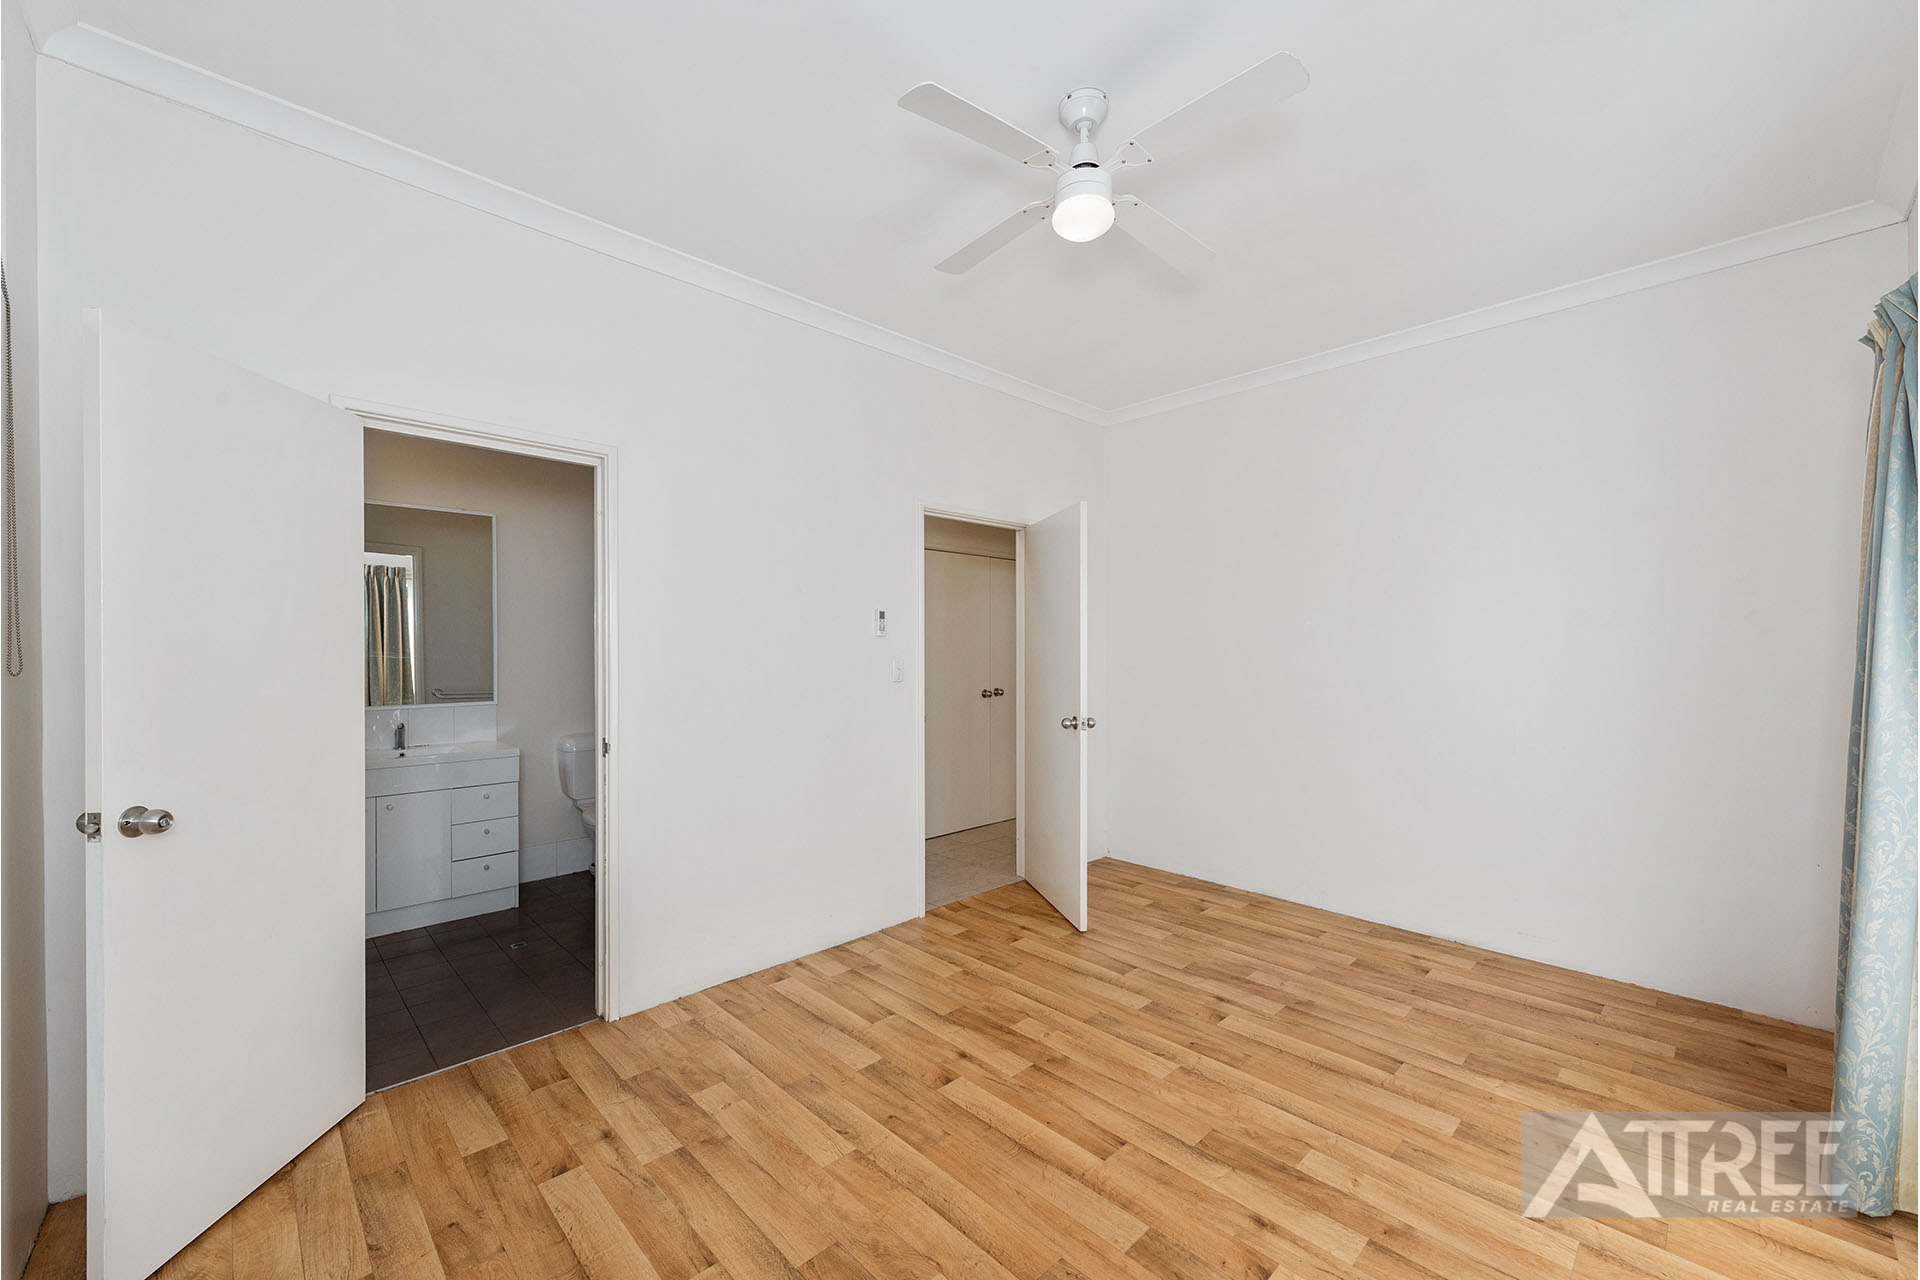 Property for sale in CANNING VALE, 14 Crouch Place : Attree Real Estate